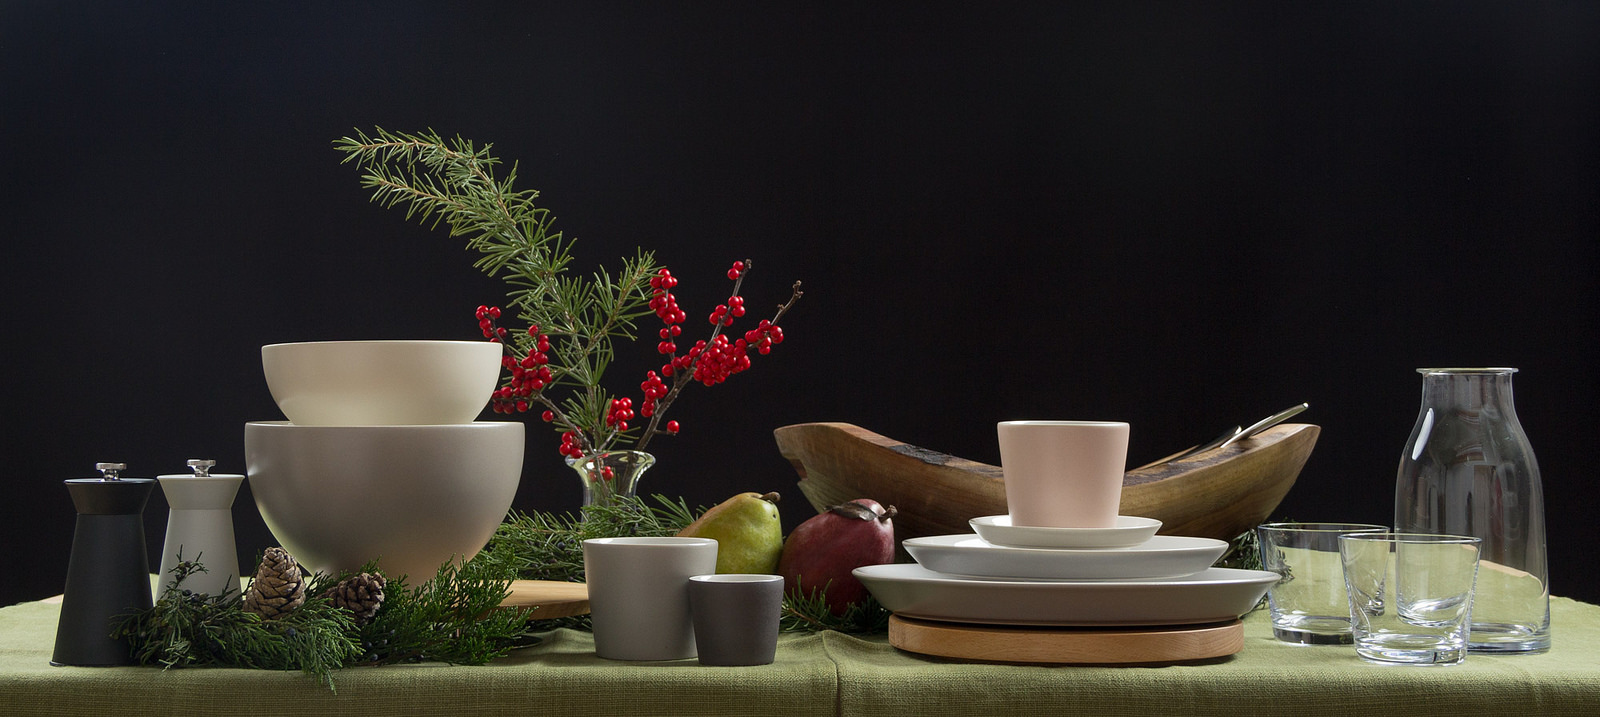 Alessi Tonale dinnerware arranged for holiday serving